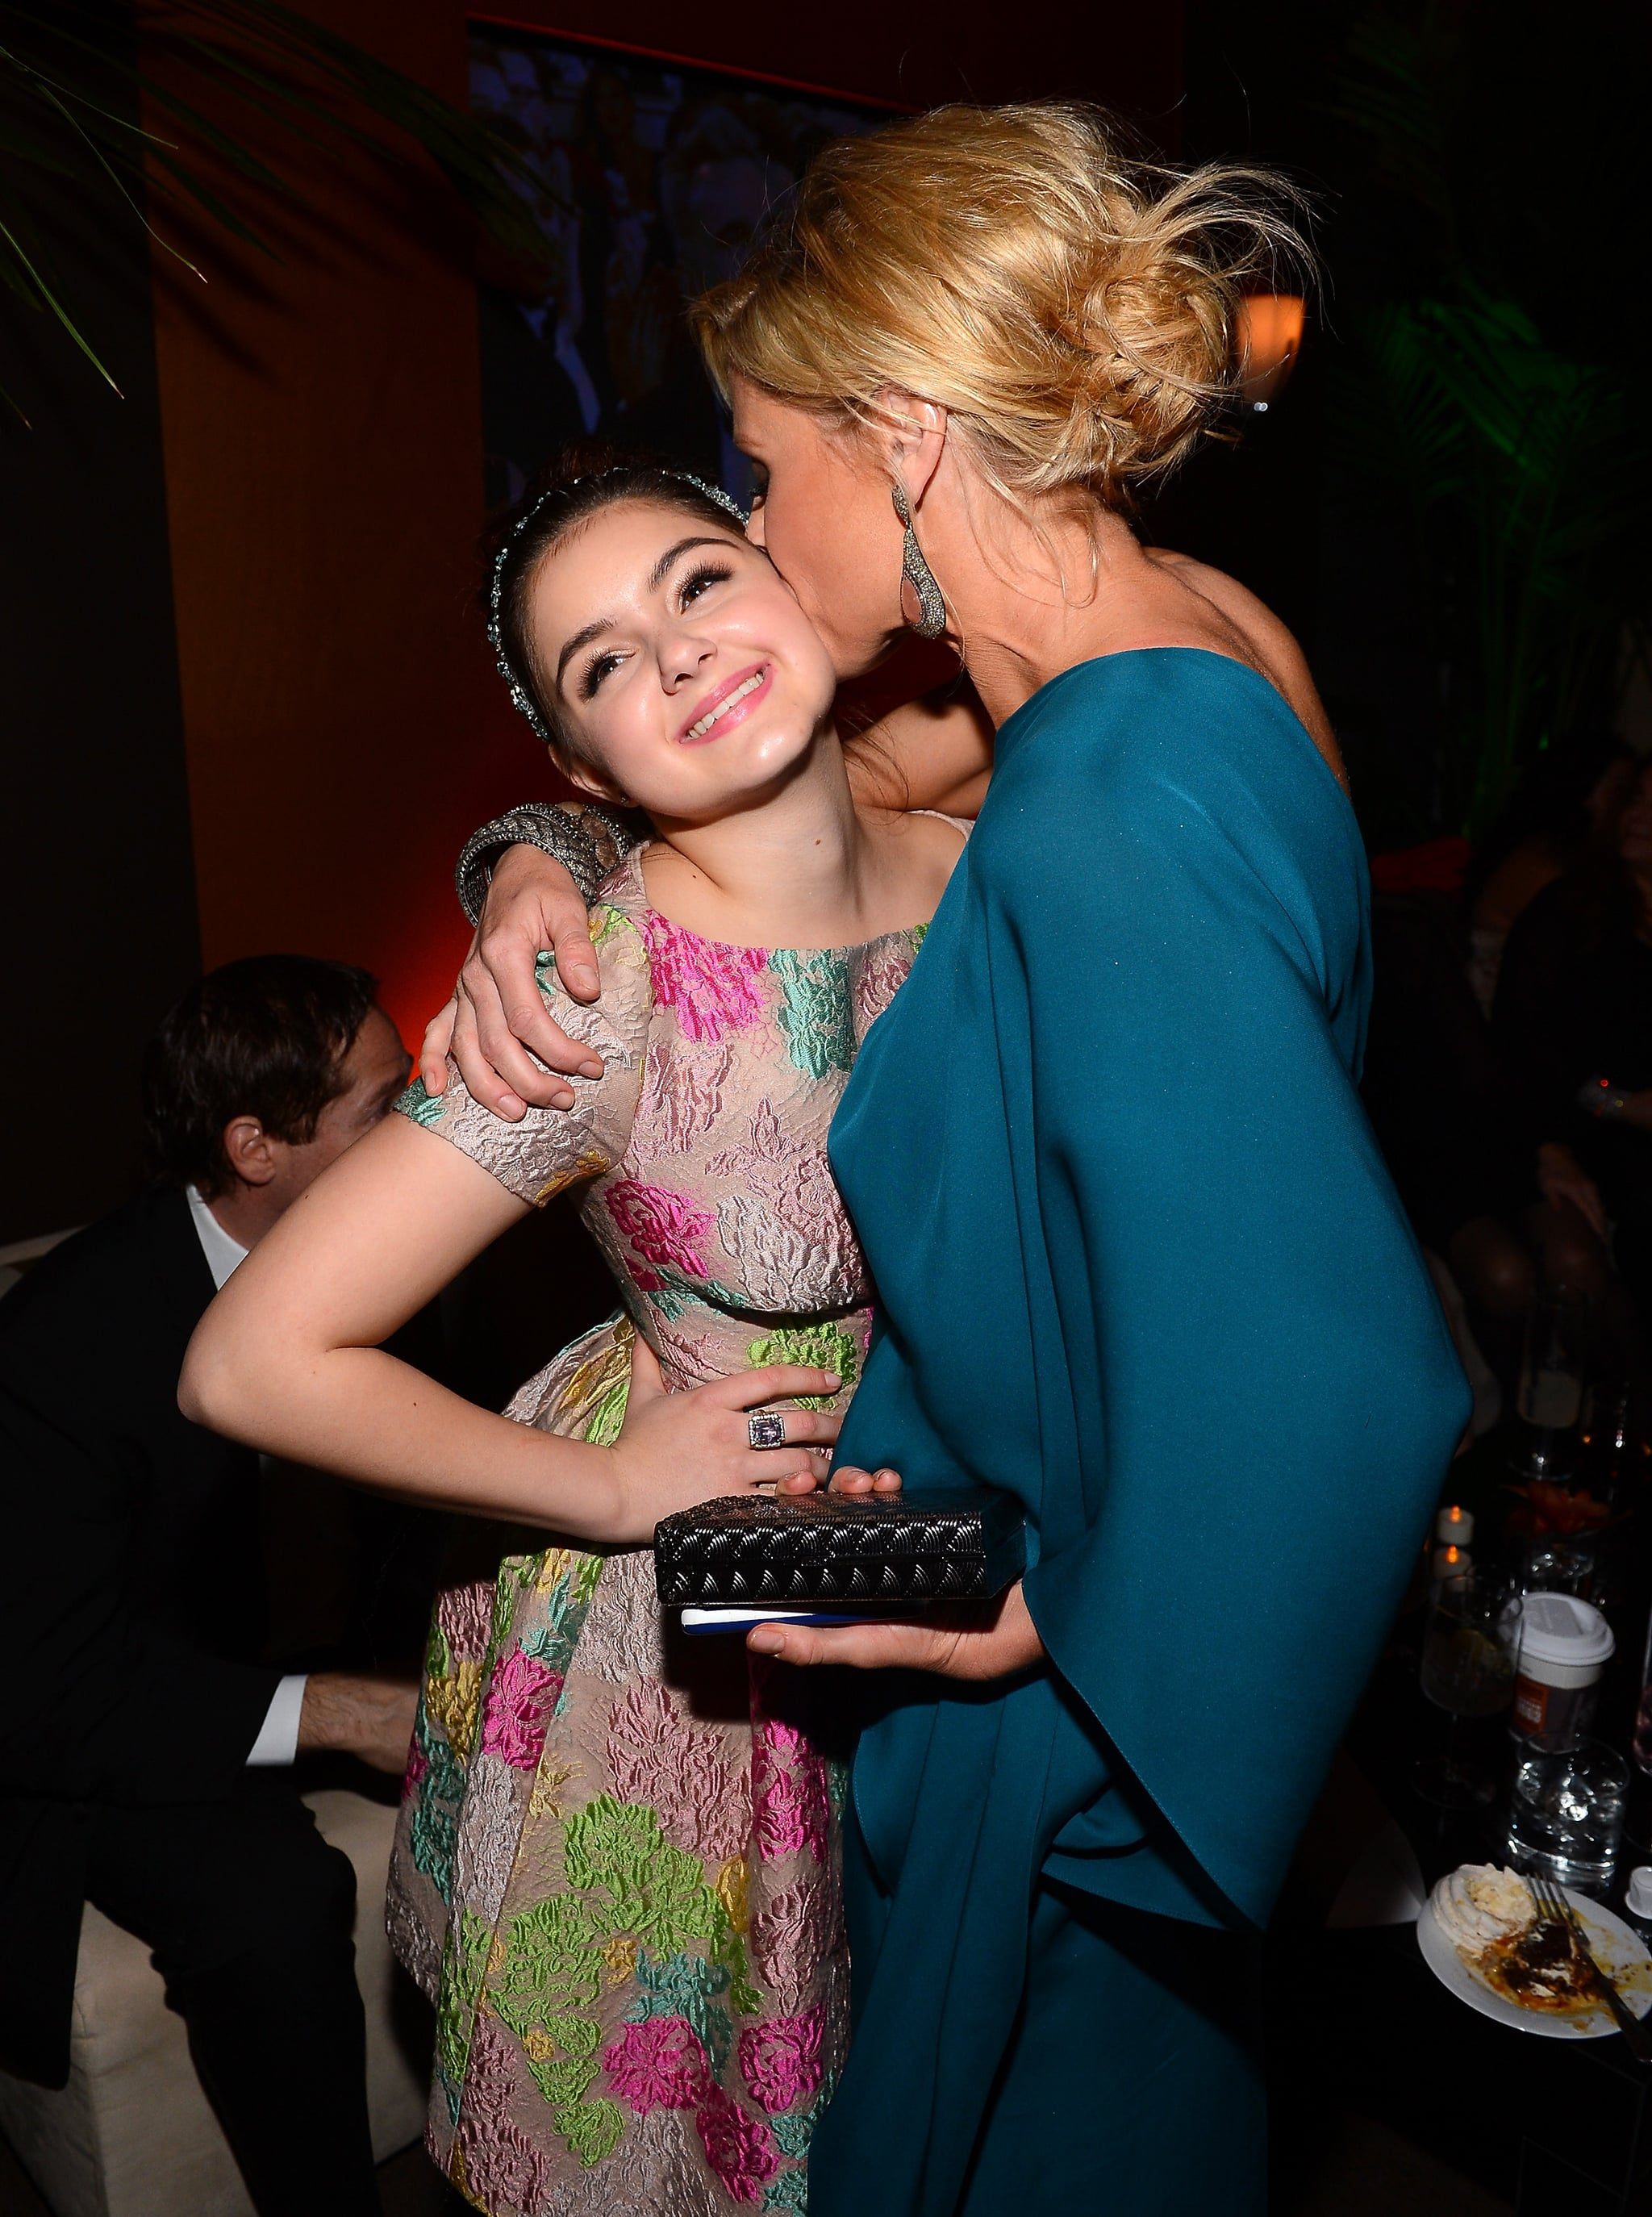 Modern Family costars Ariel Winter and Jullie Bowen were together at the Fox bash.